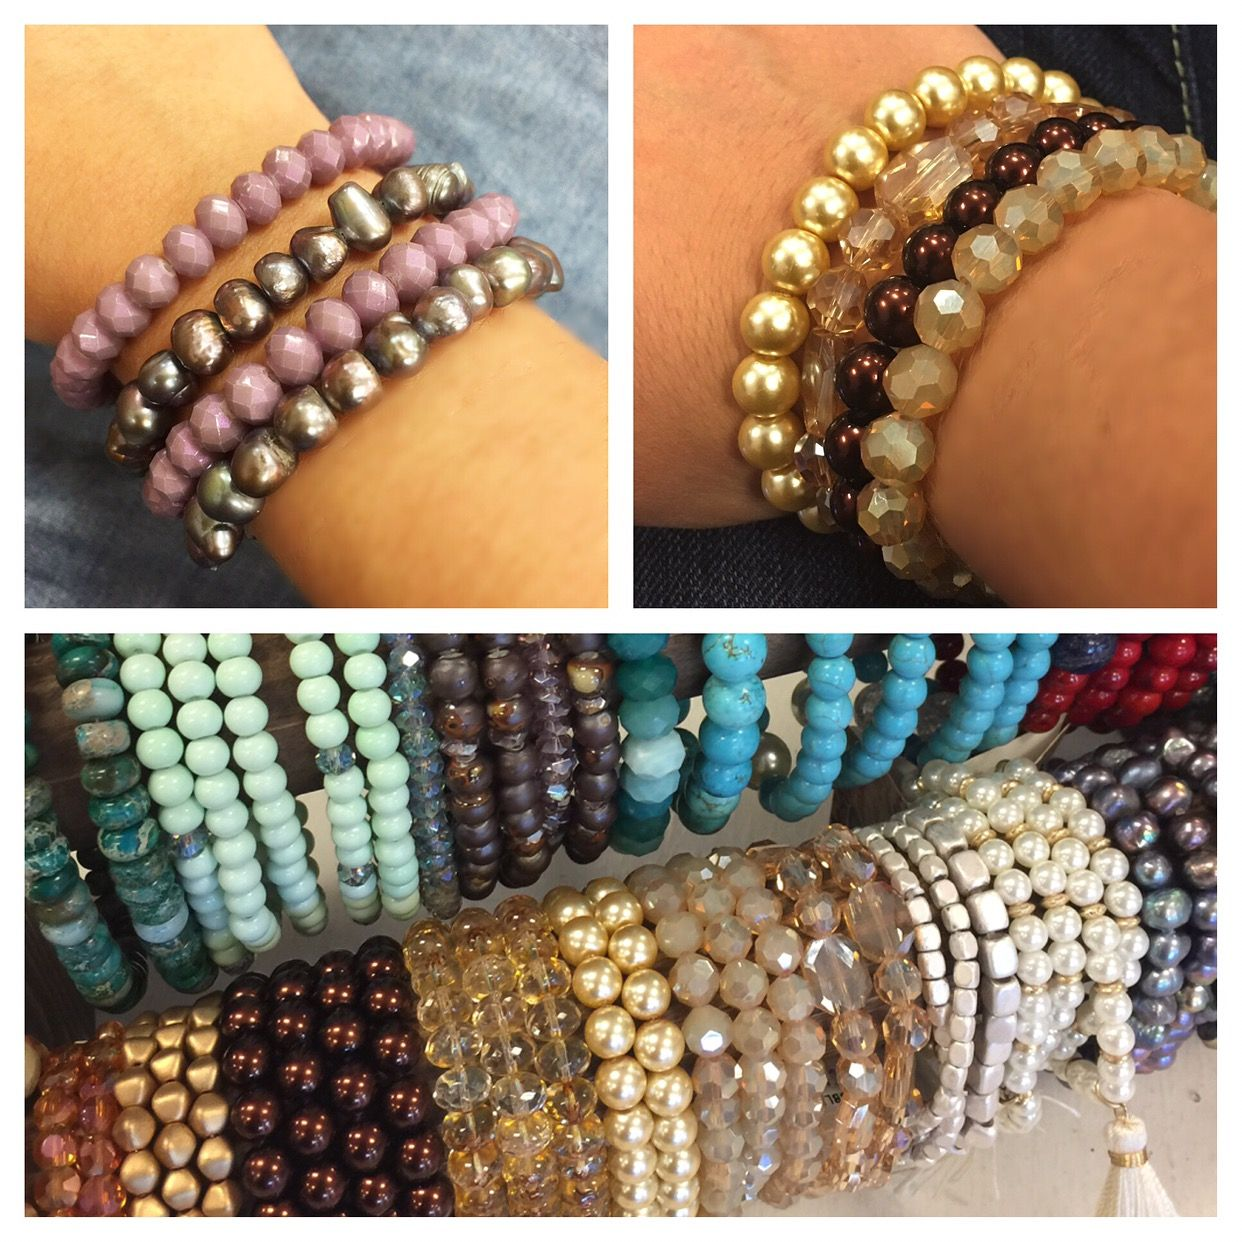 Create your own stack!!! We have lots of beautiful bracelets to do just that with!!! @ Tree of Life Supplements, Gifts & More  #stackbracelets   treeoflifesgm@yahoo.com